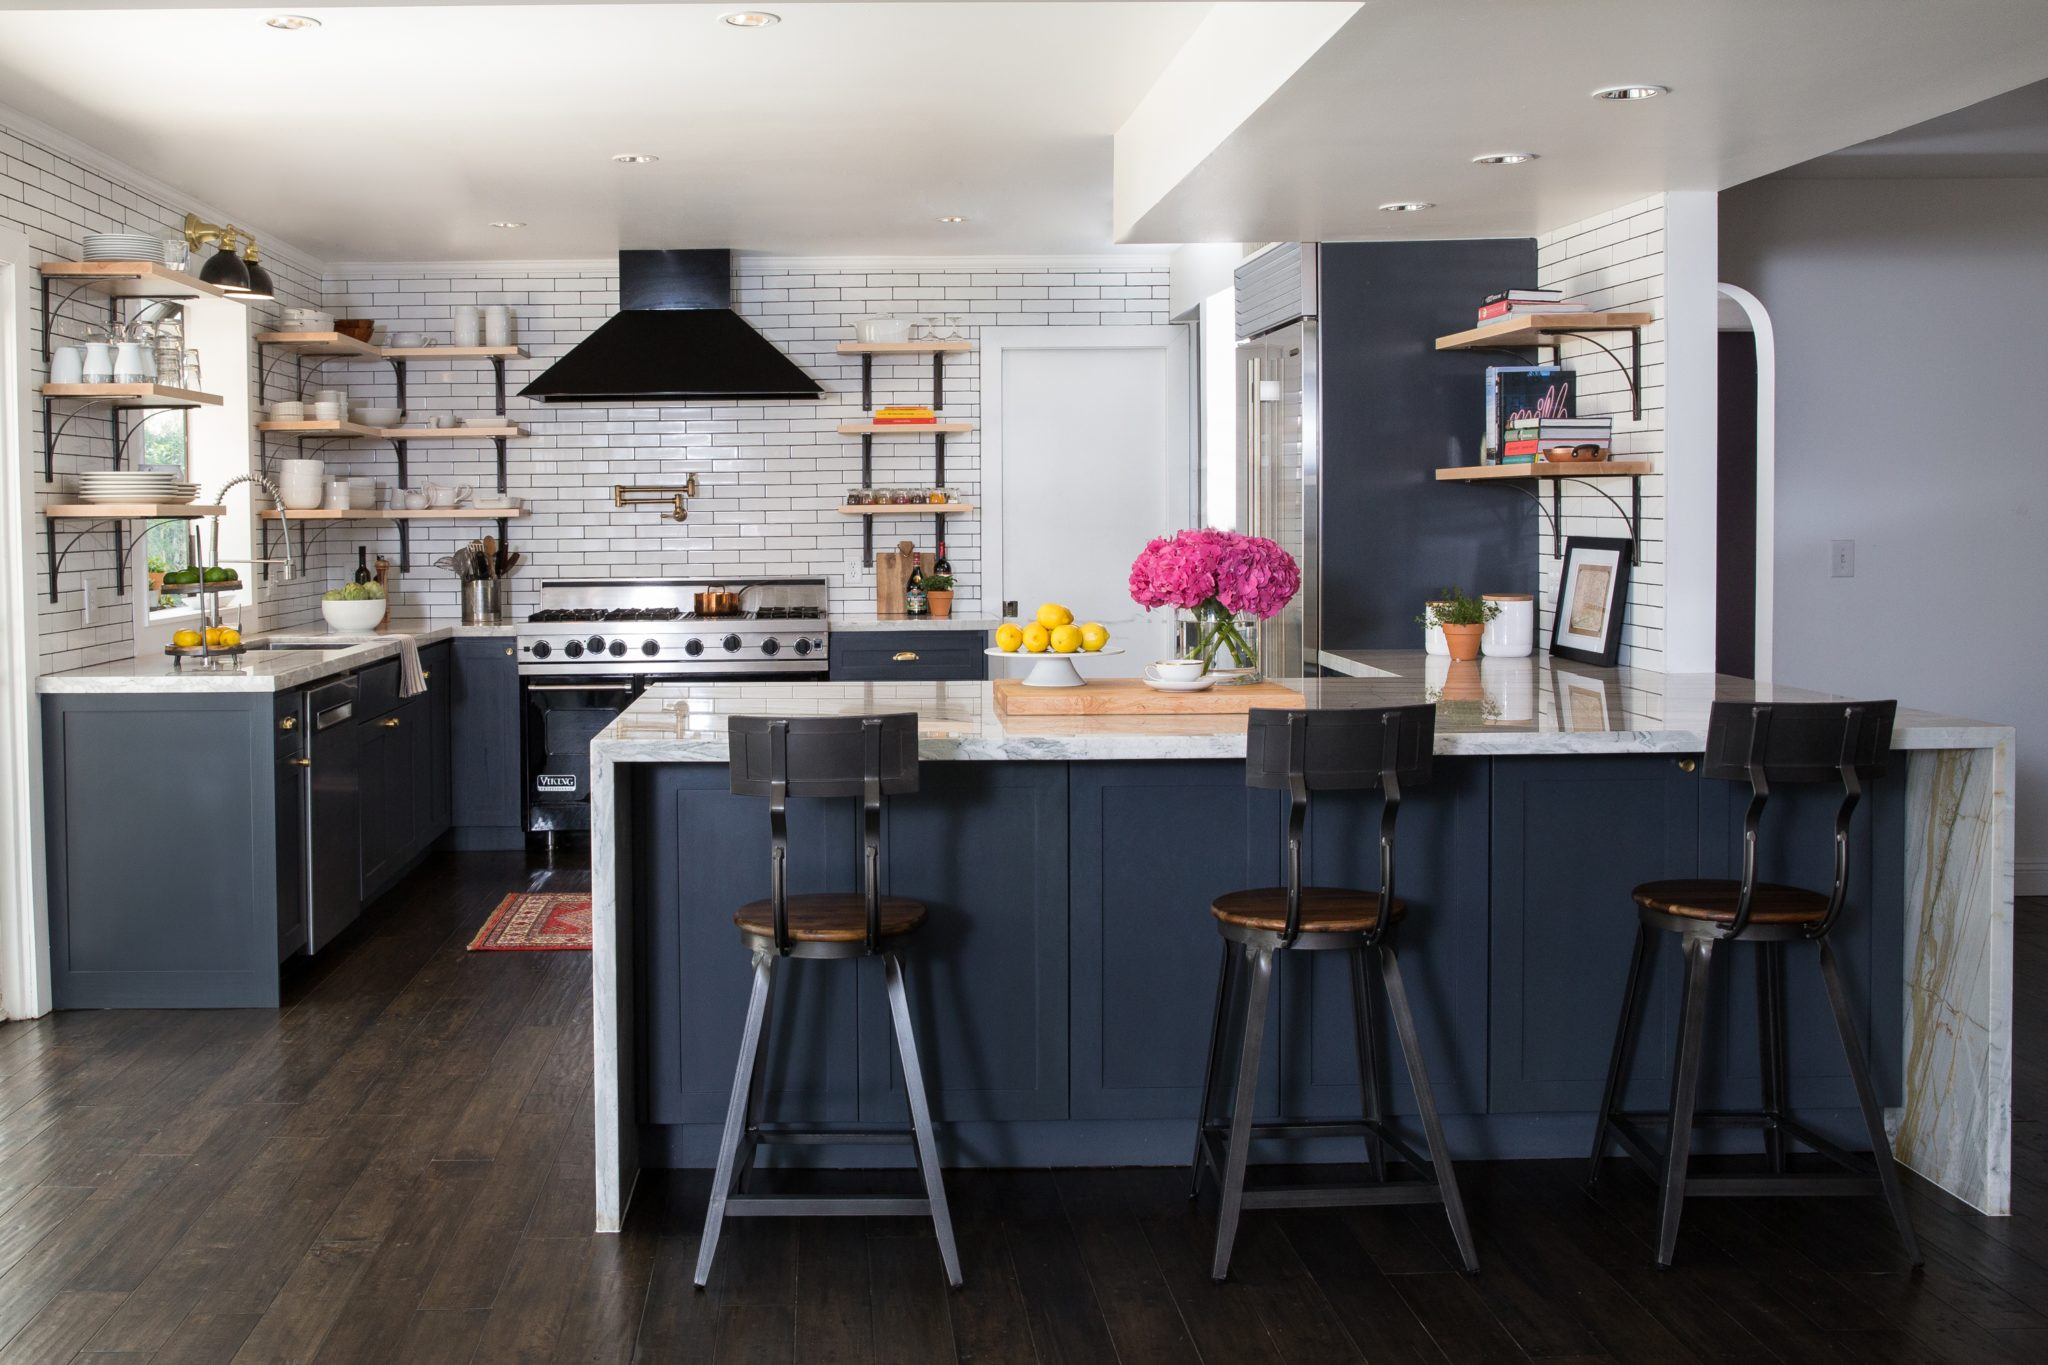 European bistro kitchen by Daniella Villamil Interiors